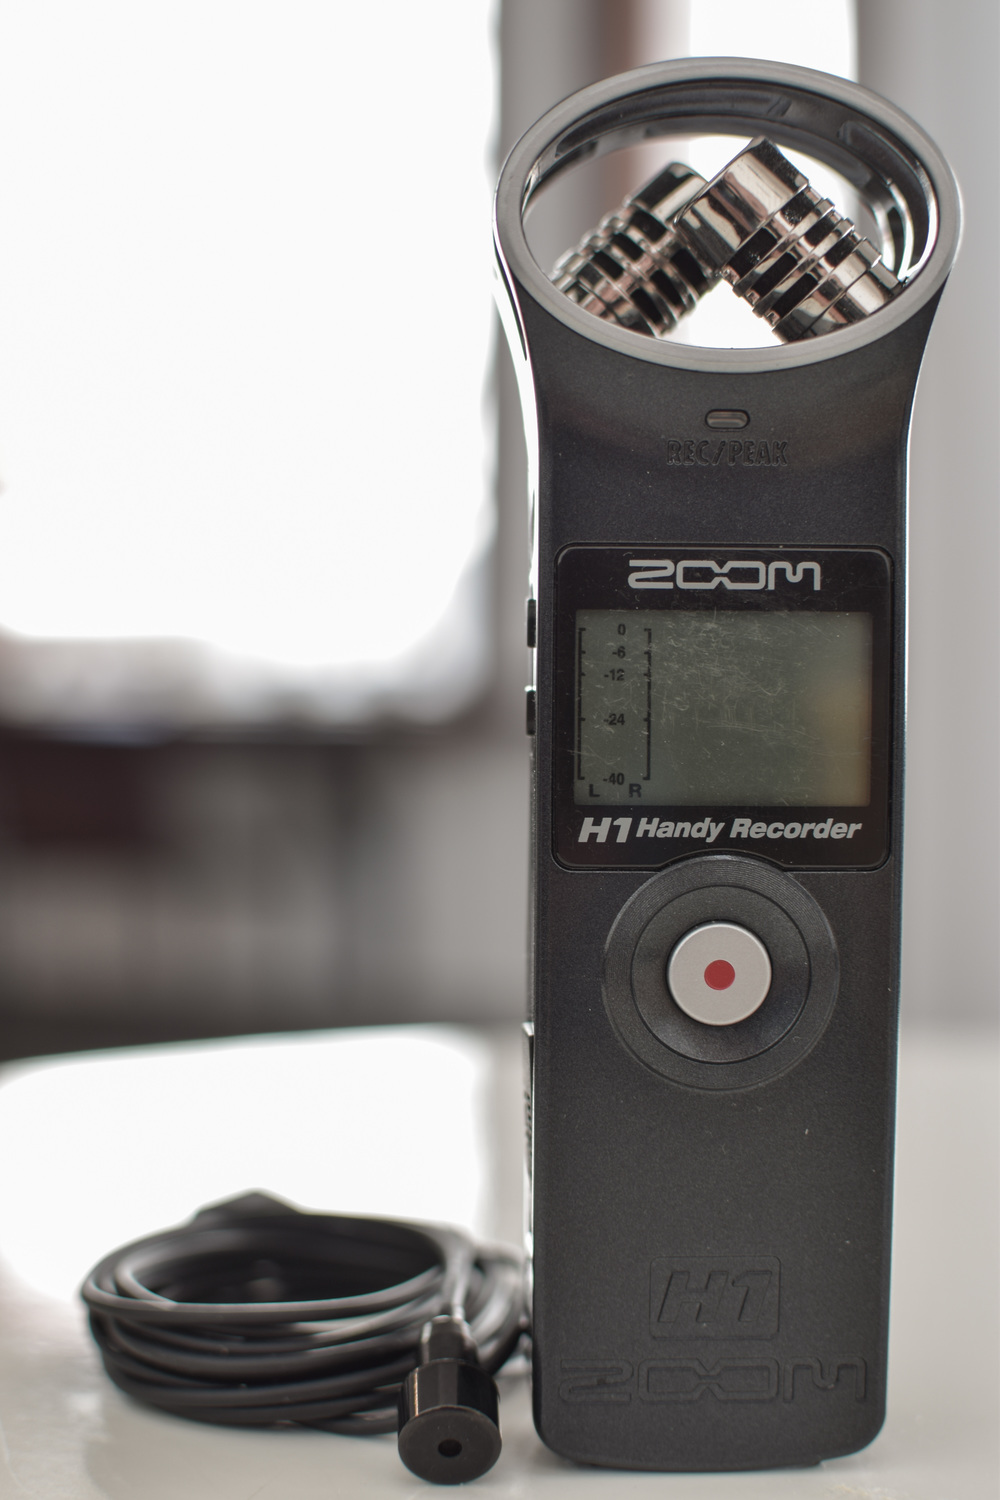 Zoom H1 recorder - Purchased June, 2016